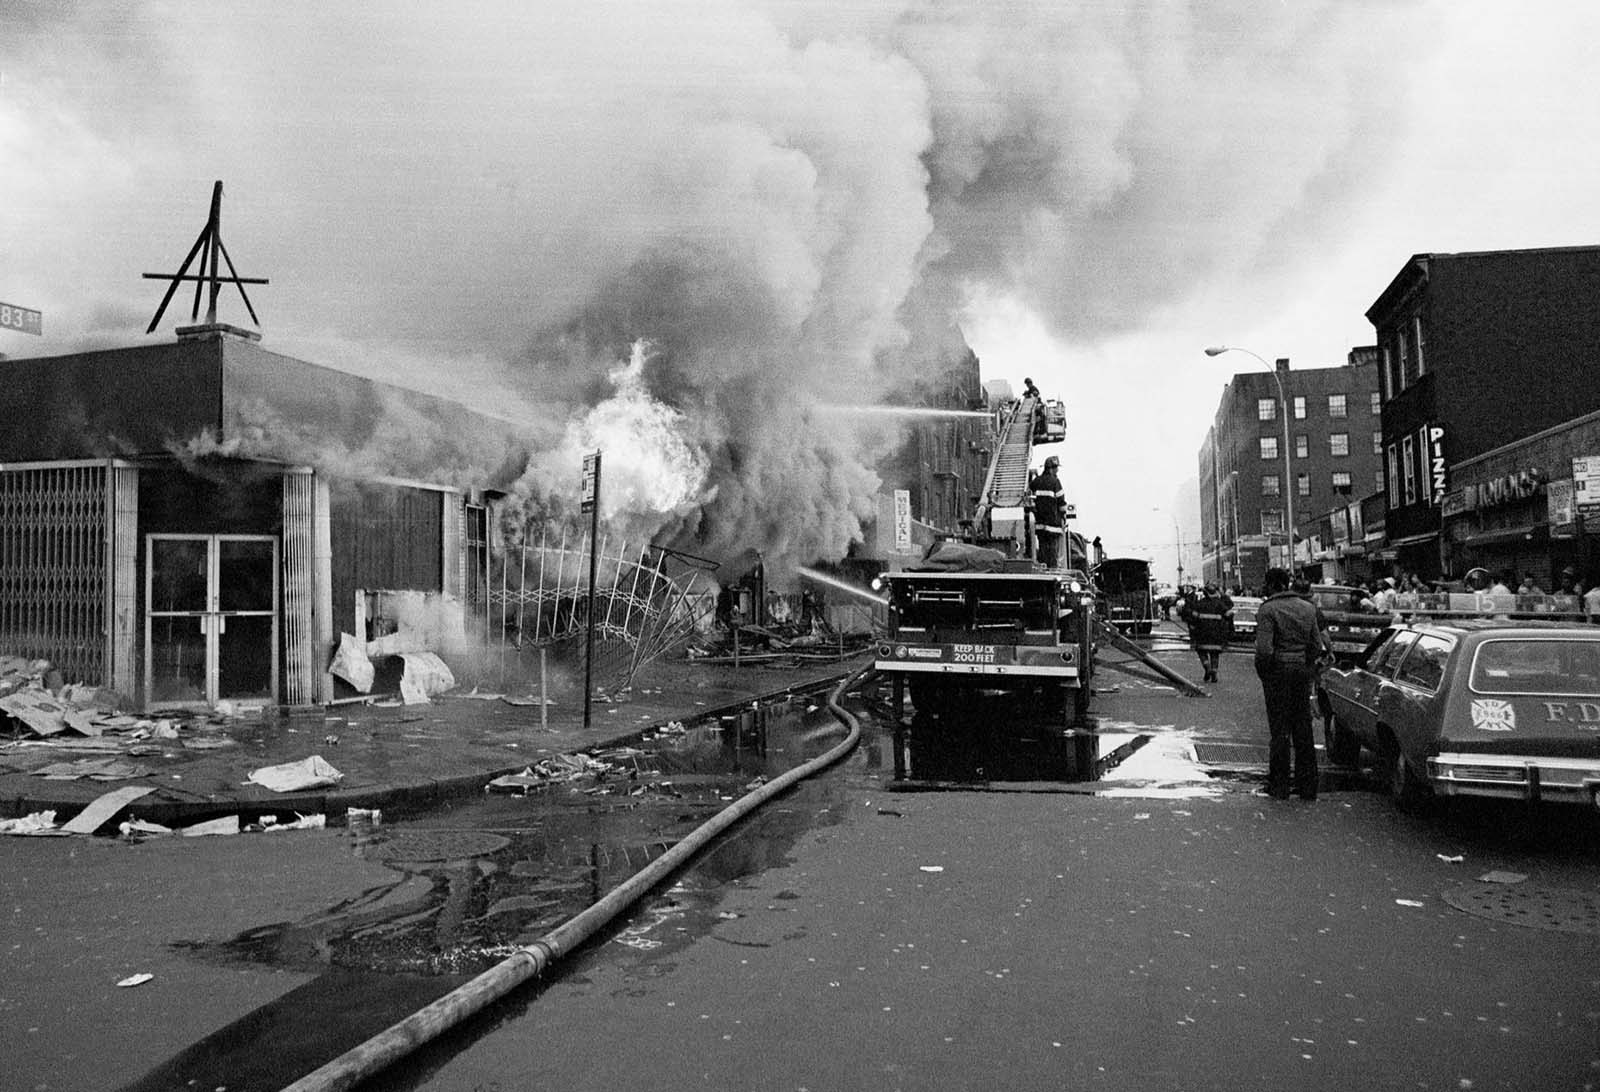 Firemen battle flames at a store in the Bronx borough of New York, one of many fires that broke out during the massive power failure that crippled the city for more than 24 hours, seen July 14, 1977. Firemen answered 1,500 alarms, 400 of which were actual fires. Forty of the fires were termed serious.